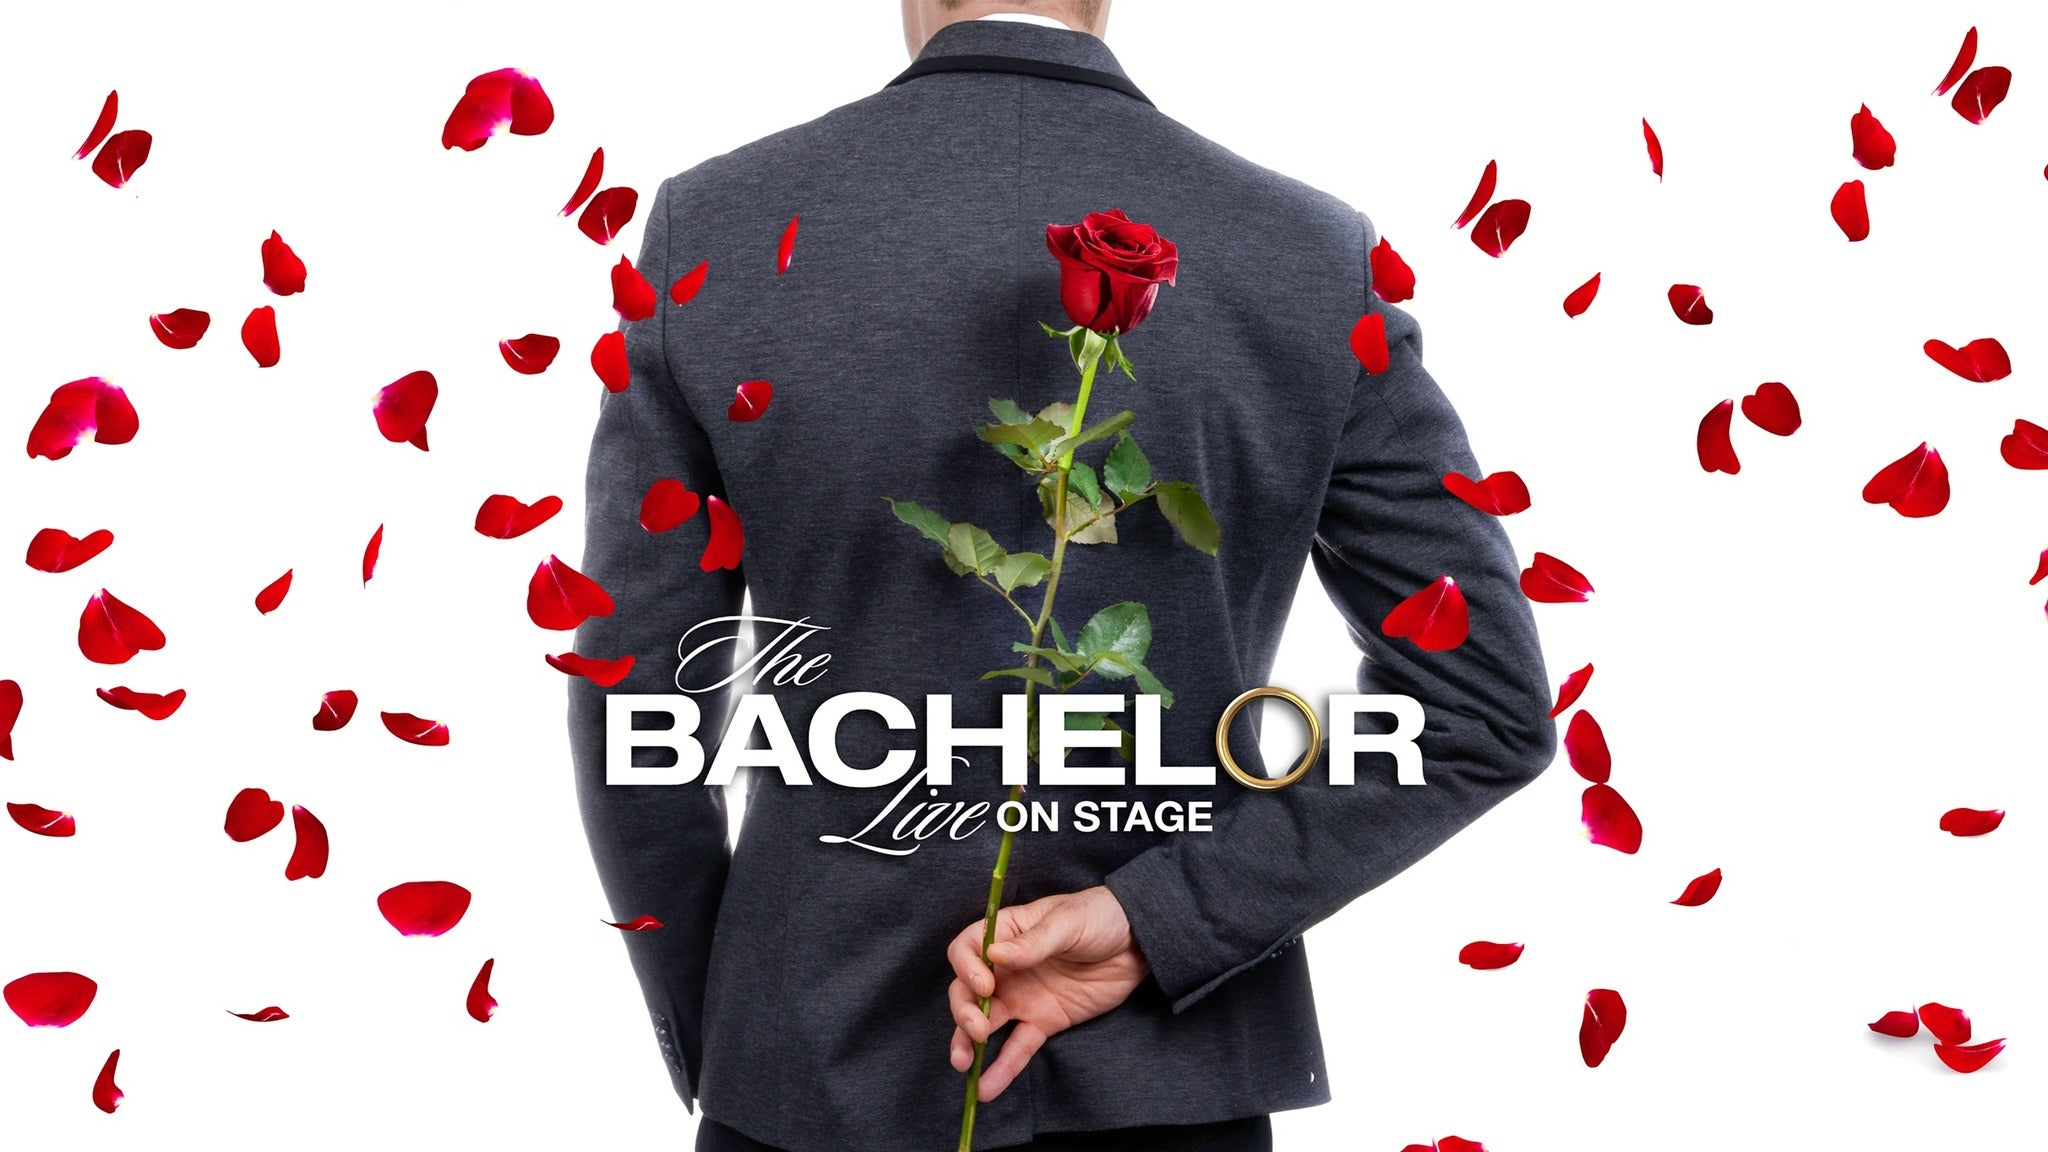 The Bachelor Live on Stage (Touring) at Cadillac Palace